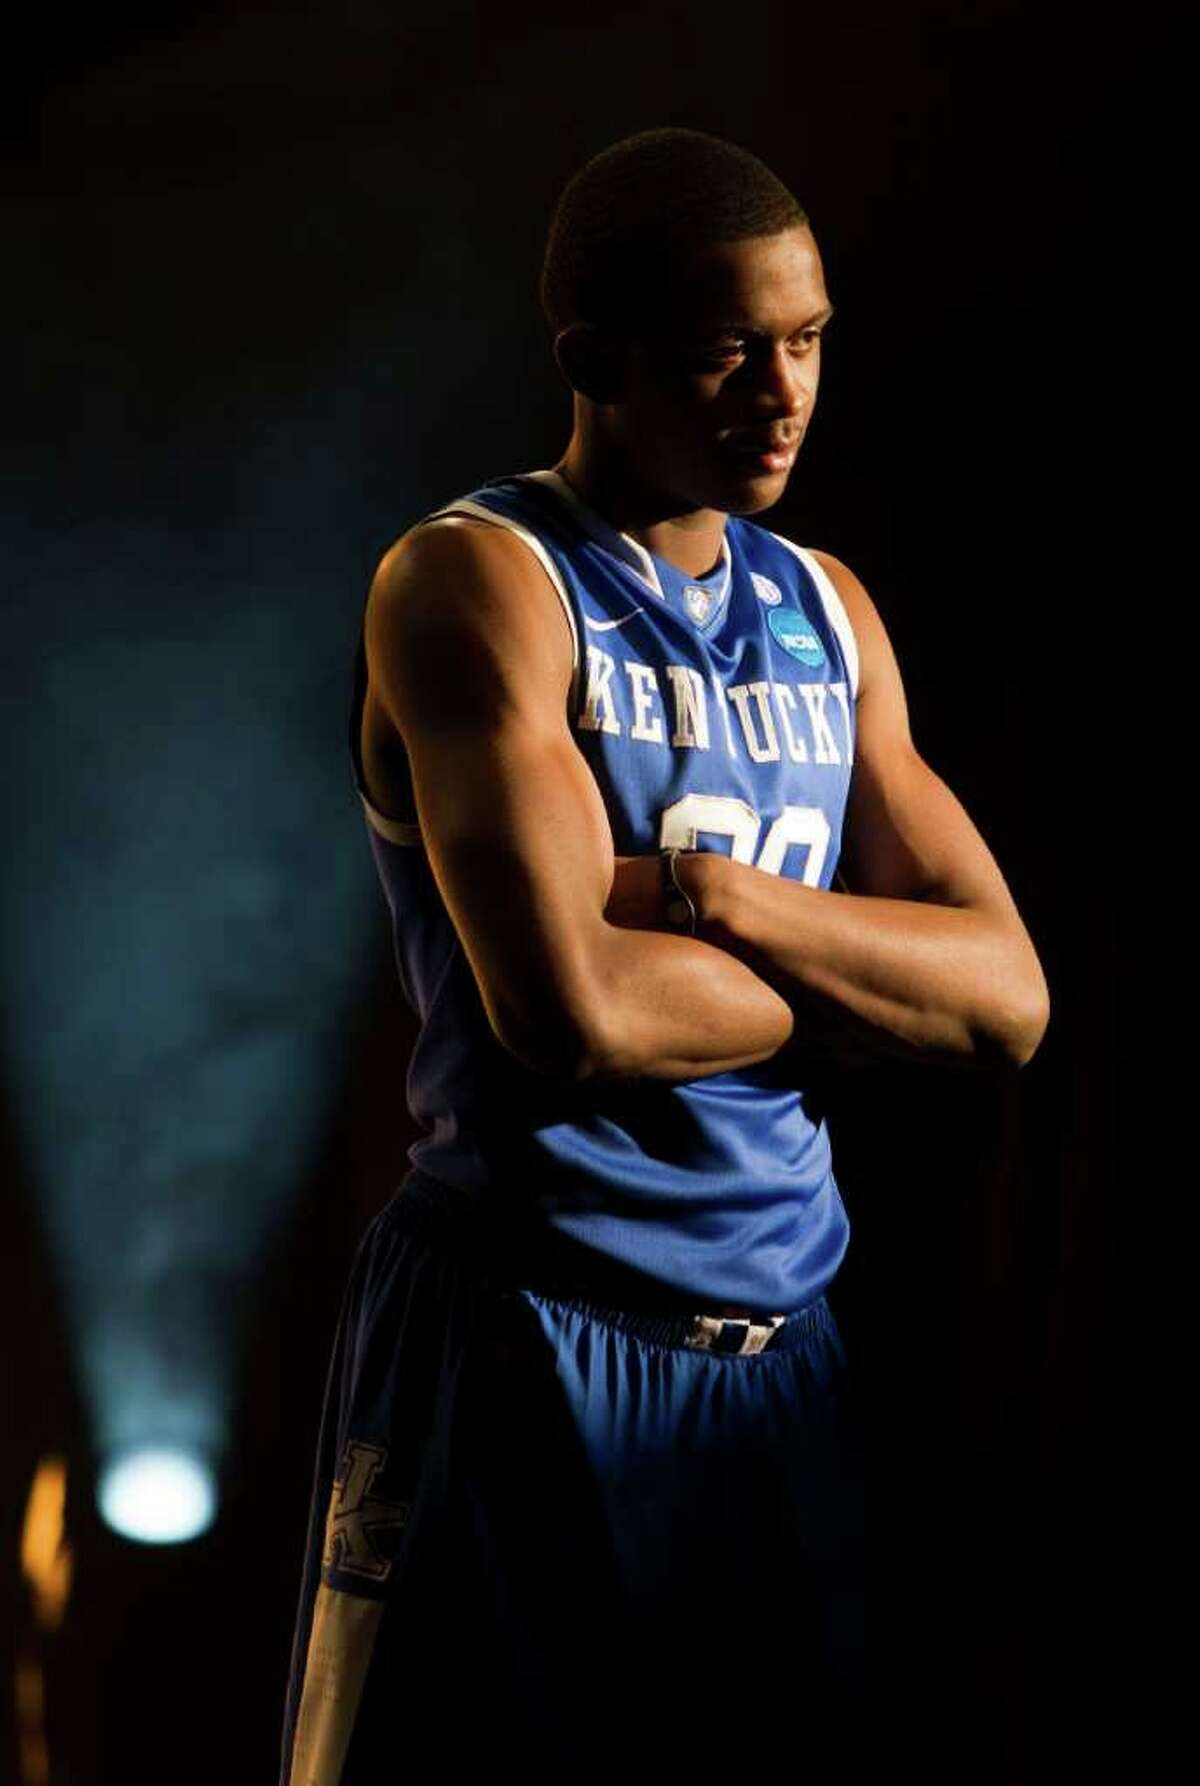 Kentucky guard Doron Lamb (20) poses for a television promotional spot for the Final Four at Reliant Stadium Thursday, March 31, 2011, in Houston. ( Brett Coomer / Houston Chronicle )